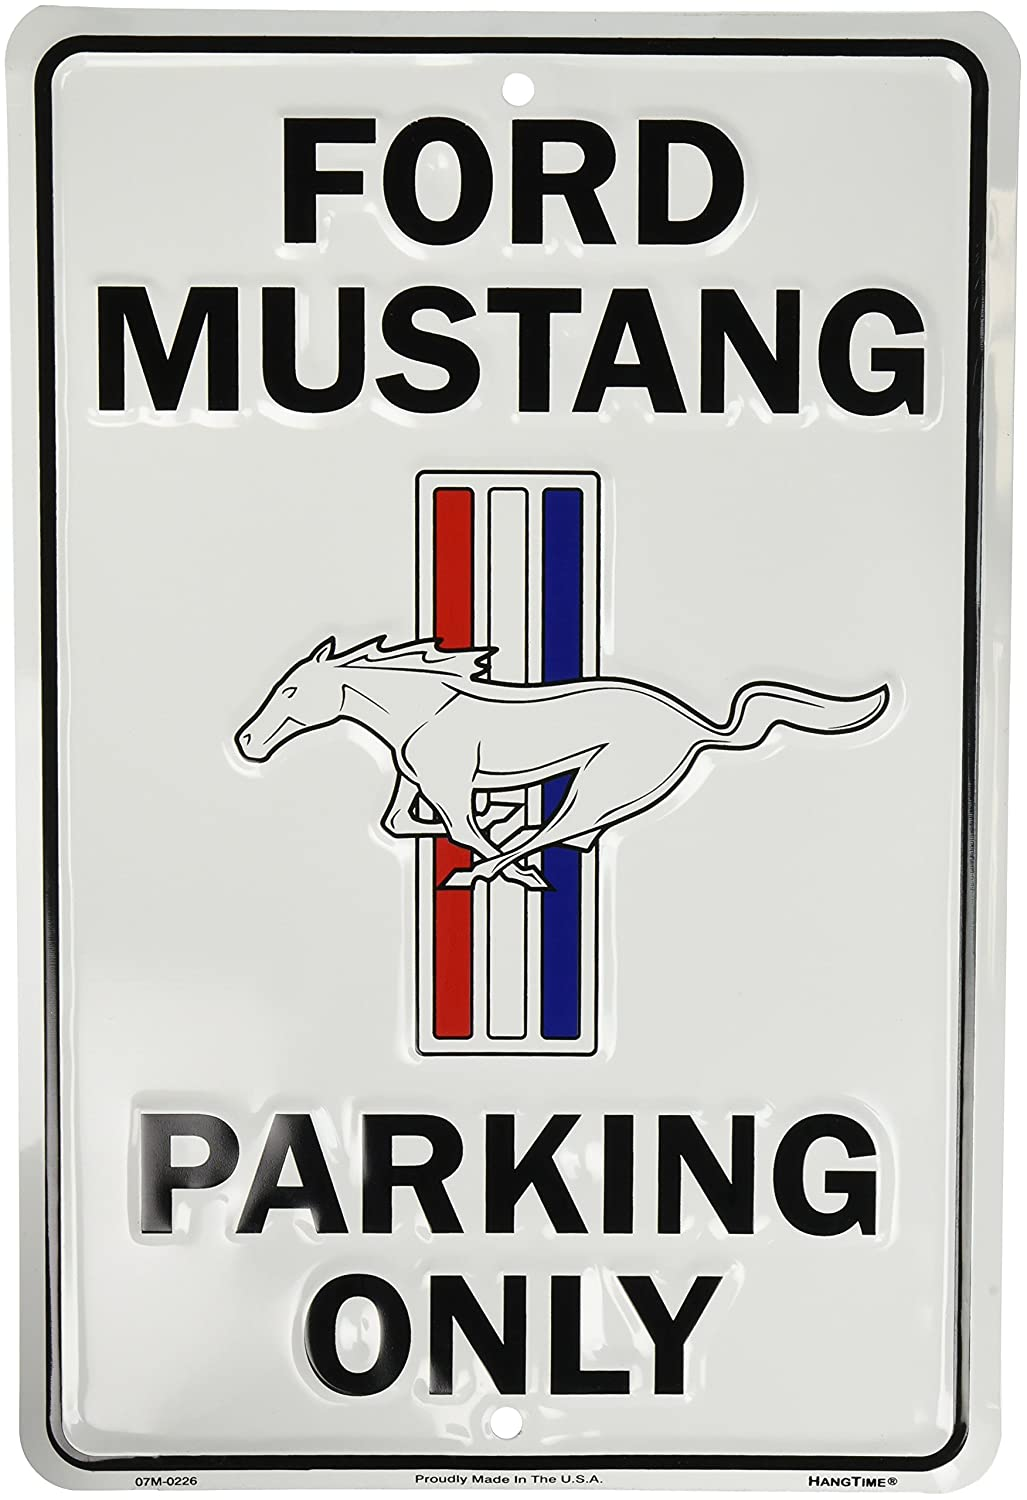 Ford Mustang Parking Only Sign by HANGTIME